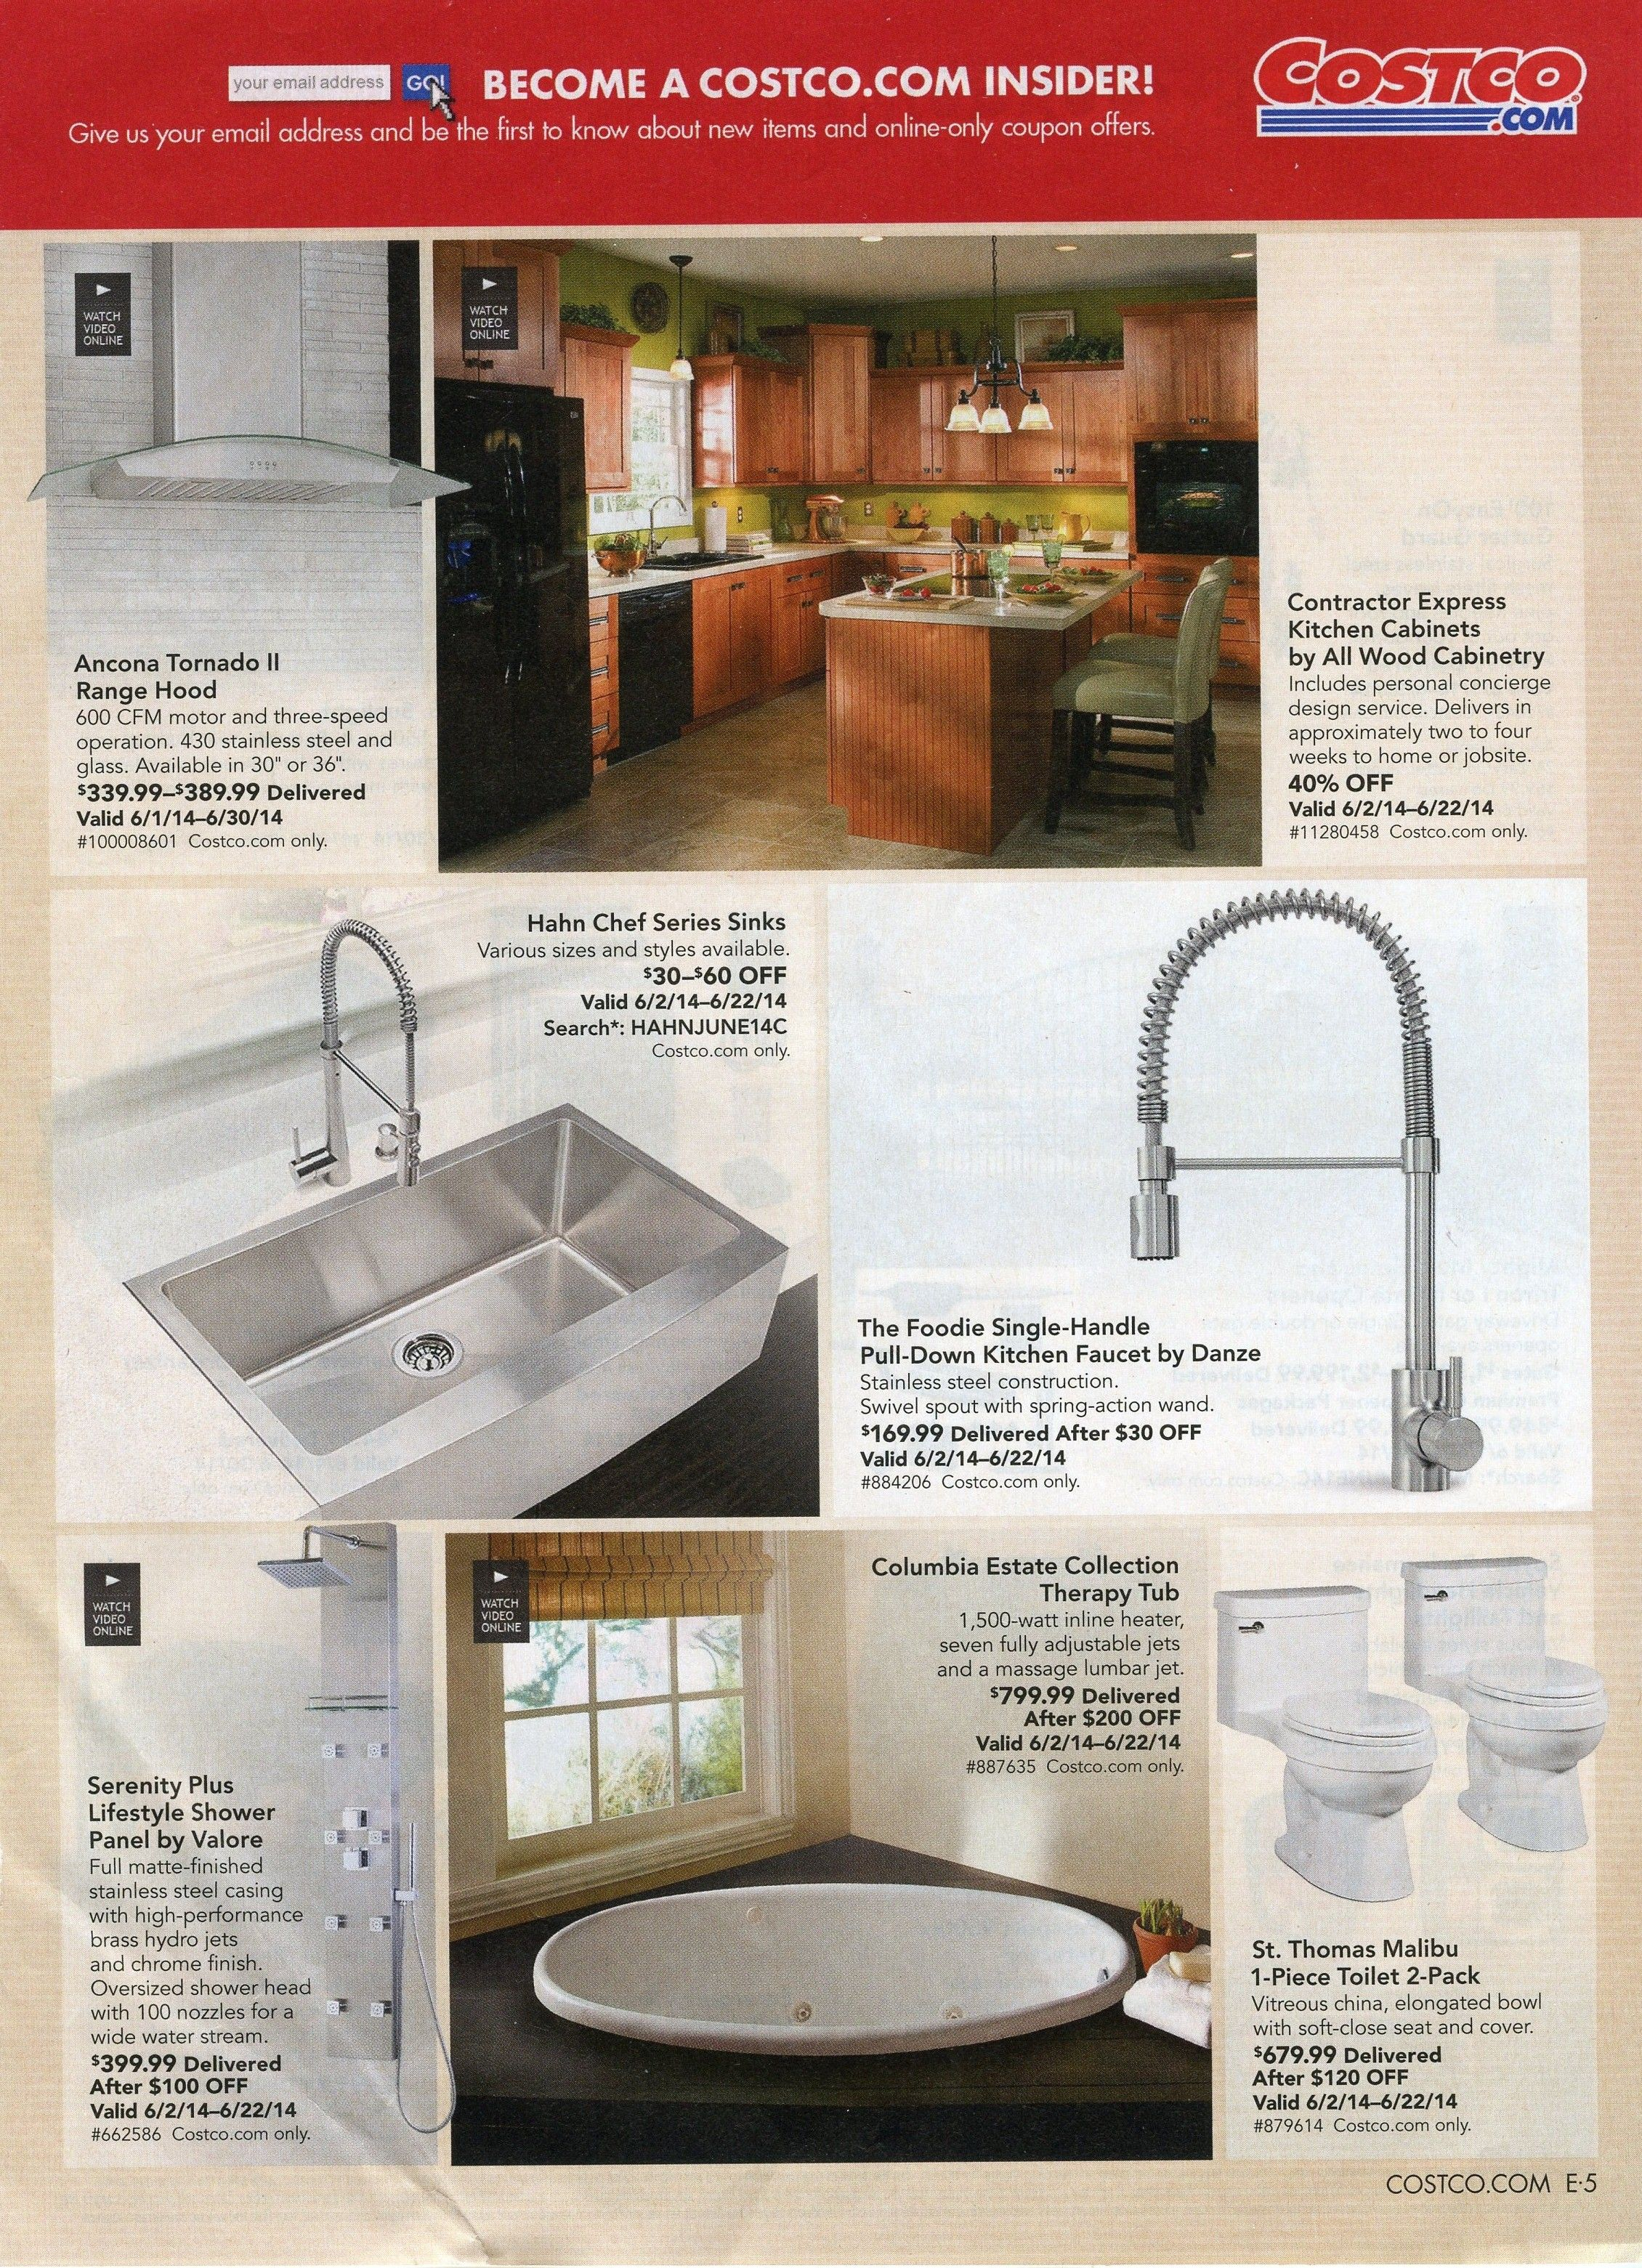 Pin by Cheryl C on Remodeling Ideas | Pinterest | Remodeling ideas